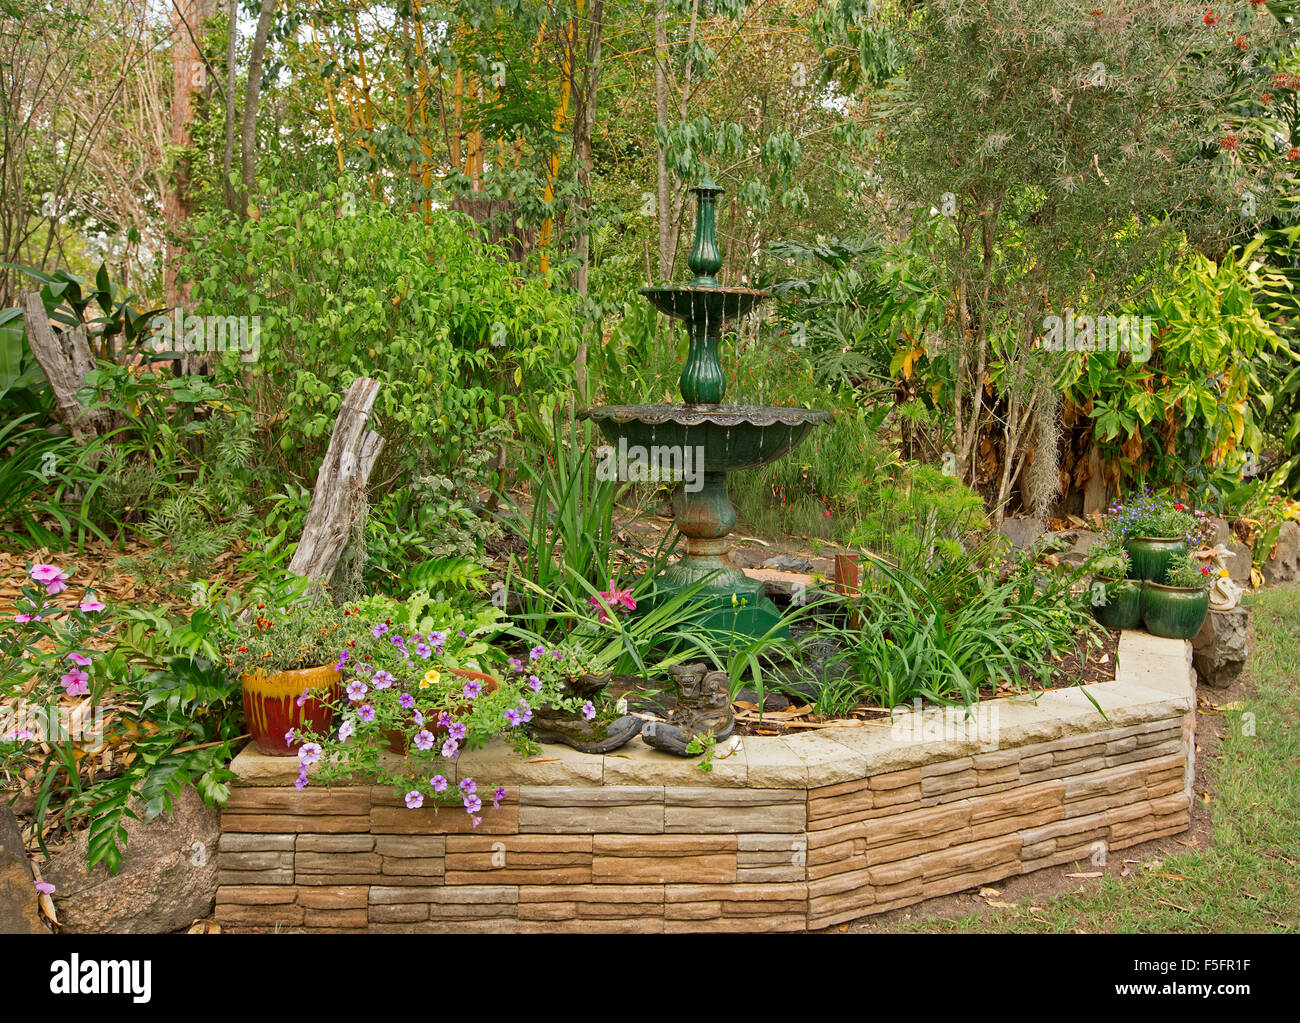 Decorative Landscape Plants : Decorative garden feature with low stone wall ornate